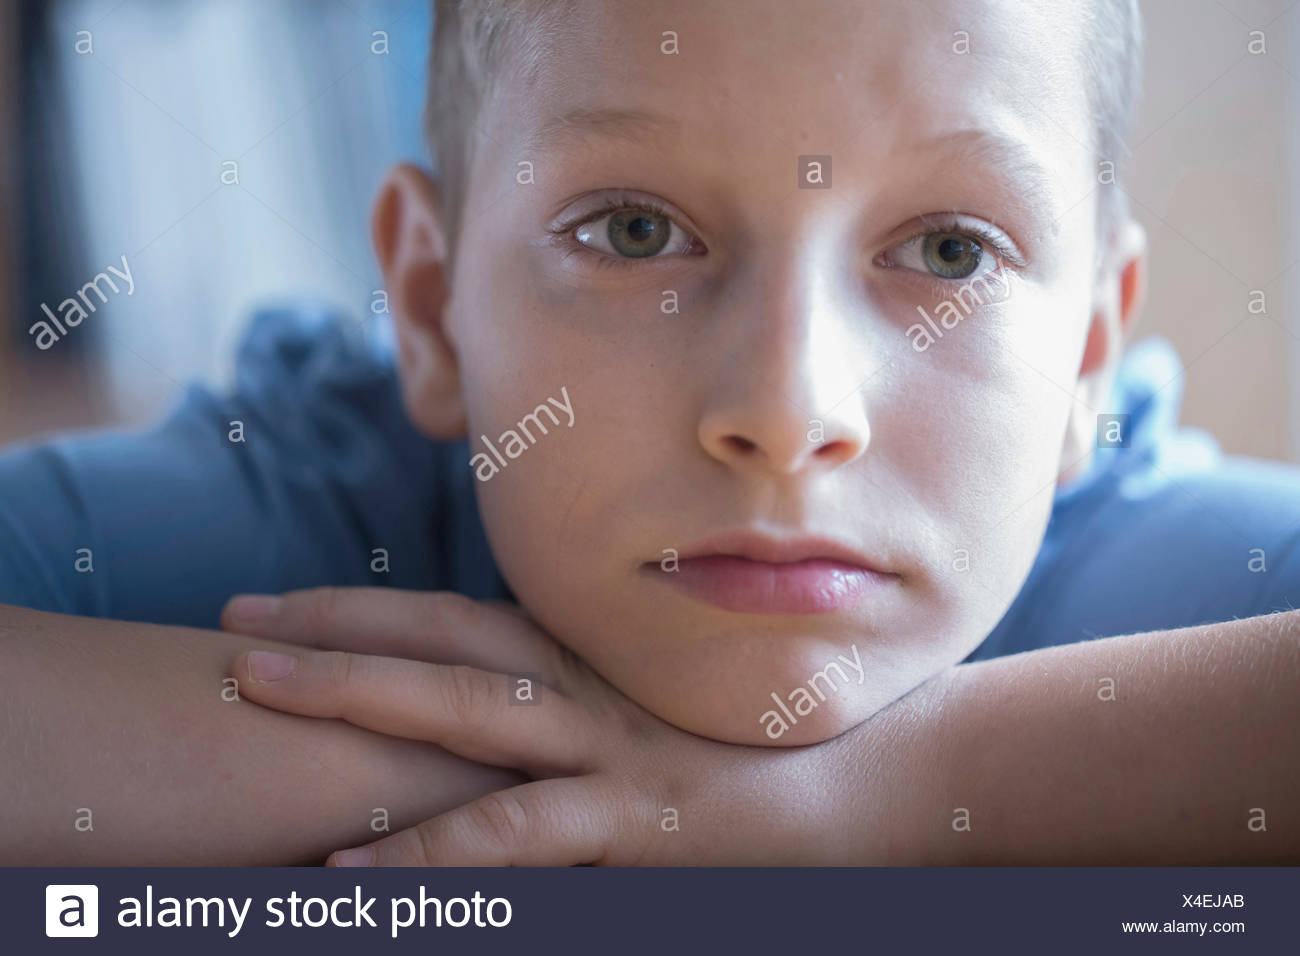 Sad boy resting head on arms, Freiburg im Breisgau, Baden-Württemberg, Germany - Stock Image